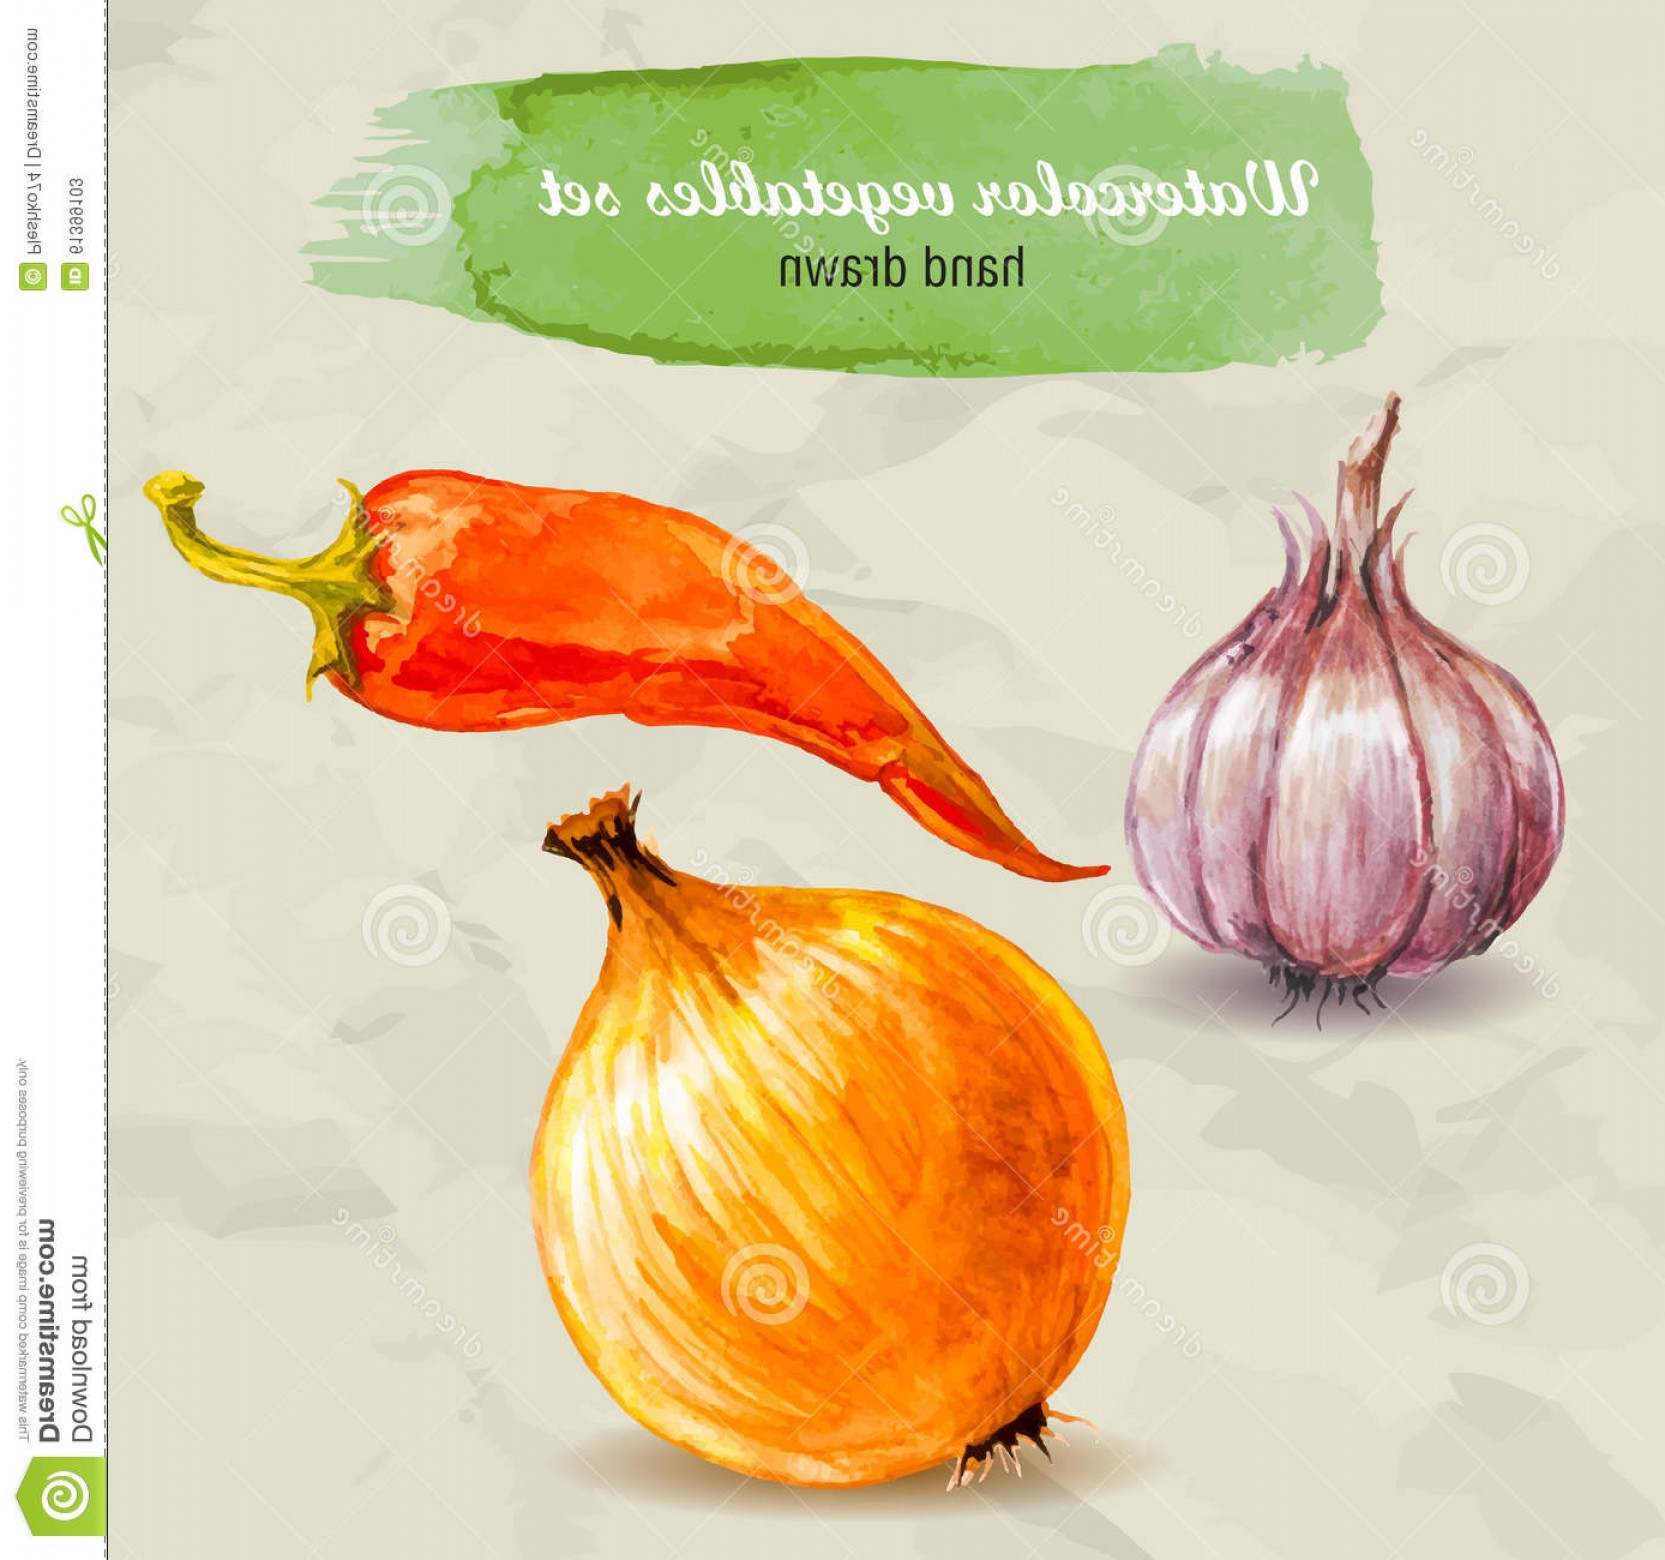 Onion Vector: Stock Illustration Garlic Red Hot Pepper Onion Vector Watercolor Hand Drawn Vegetable Set Paper Drops Organic Food Illustration Image